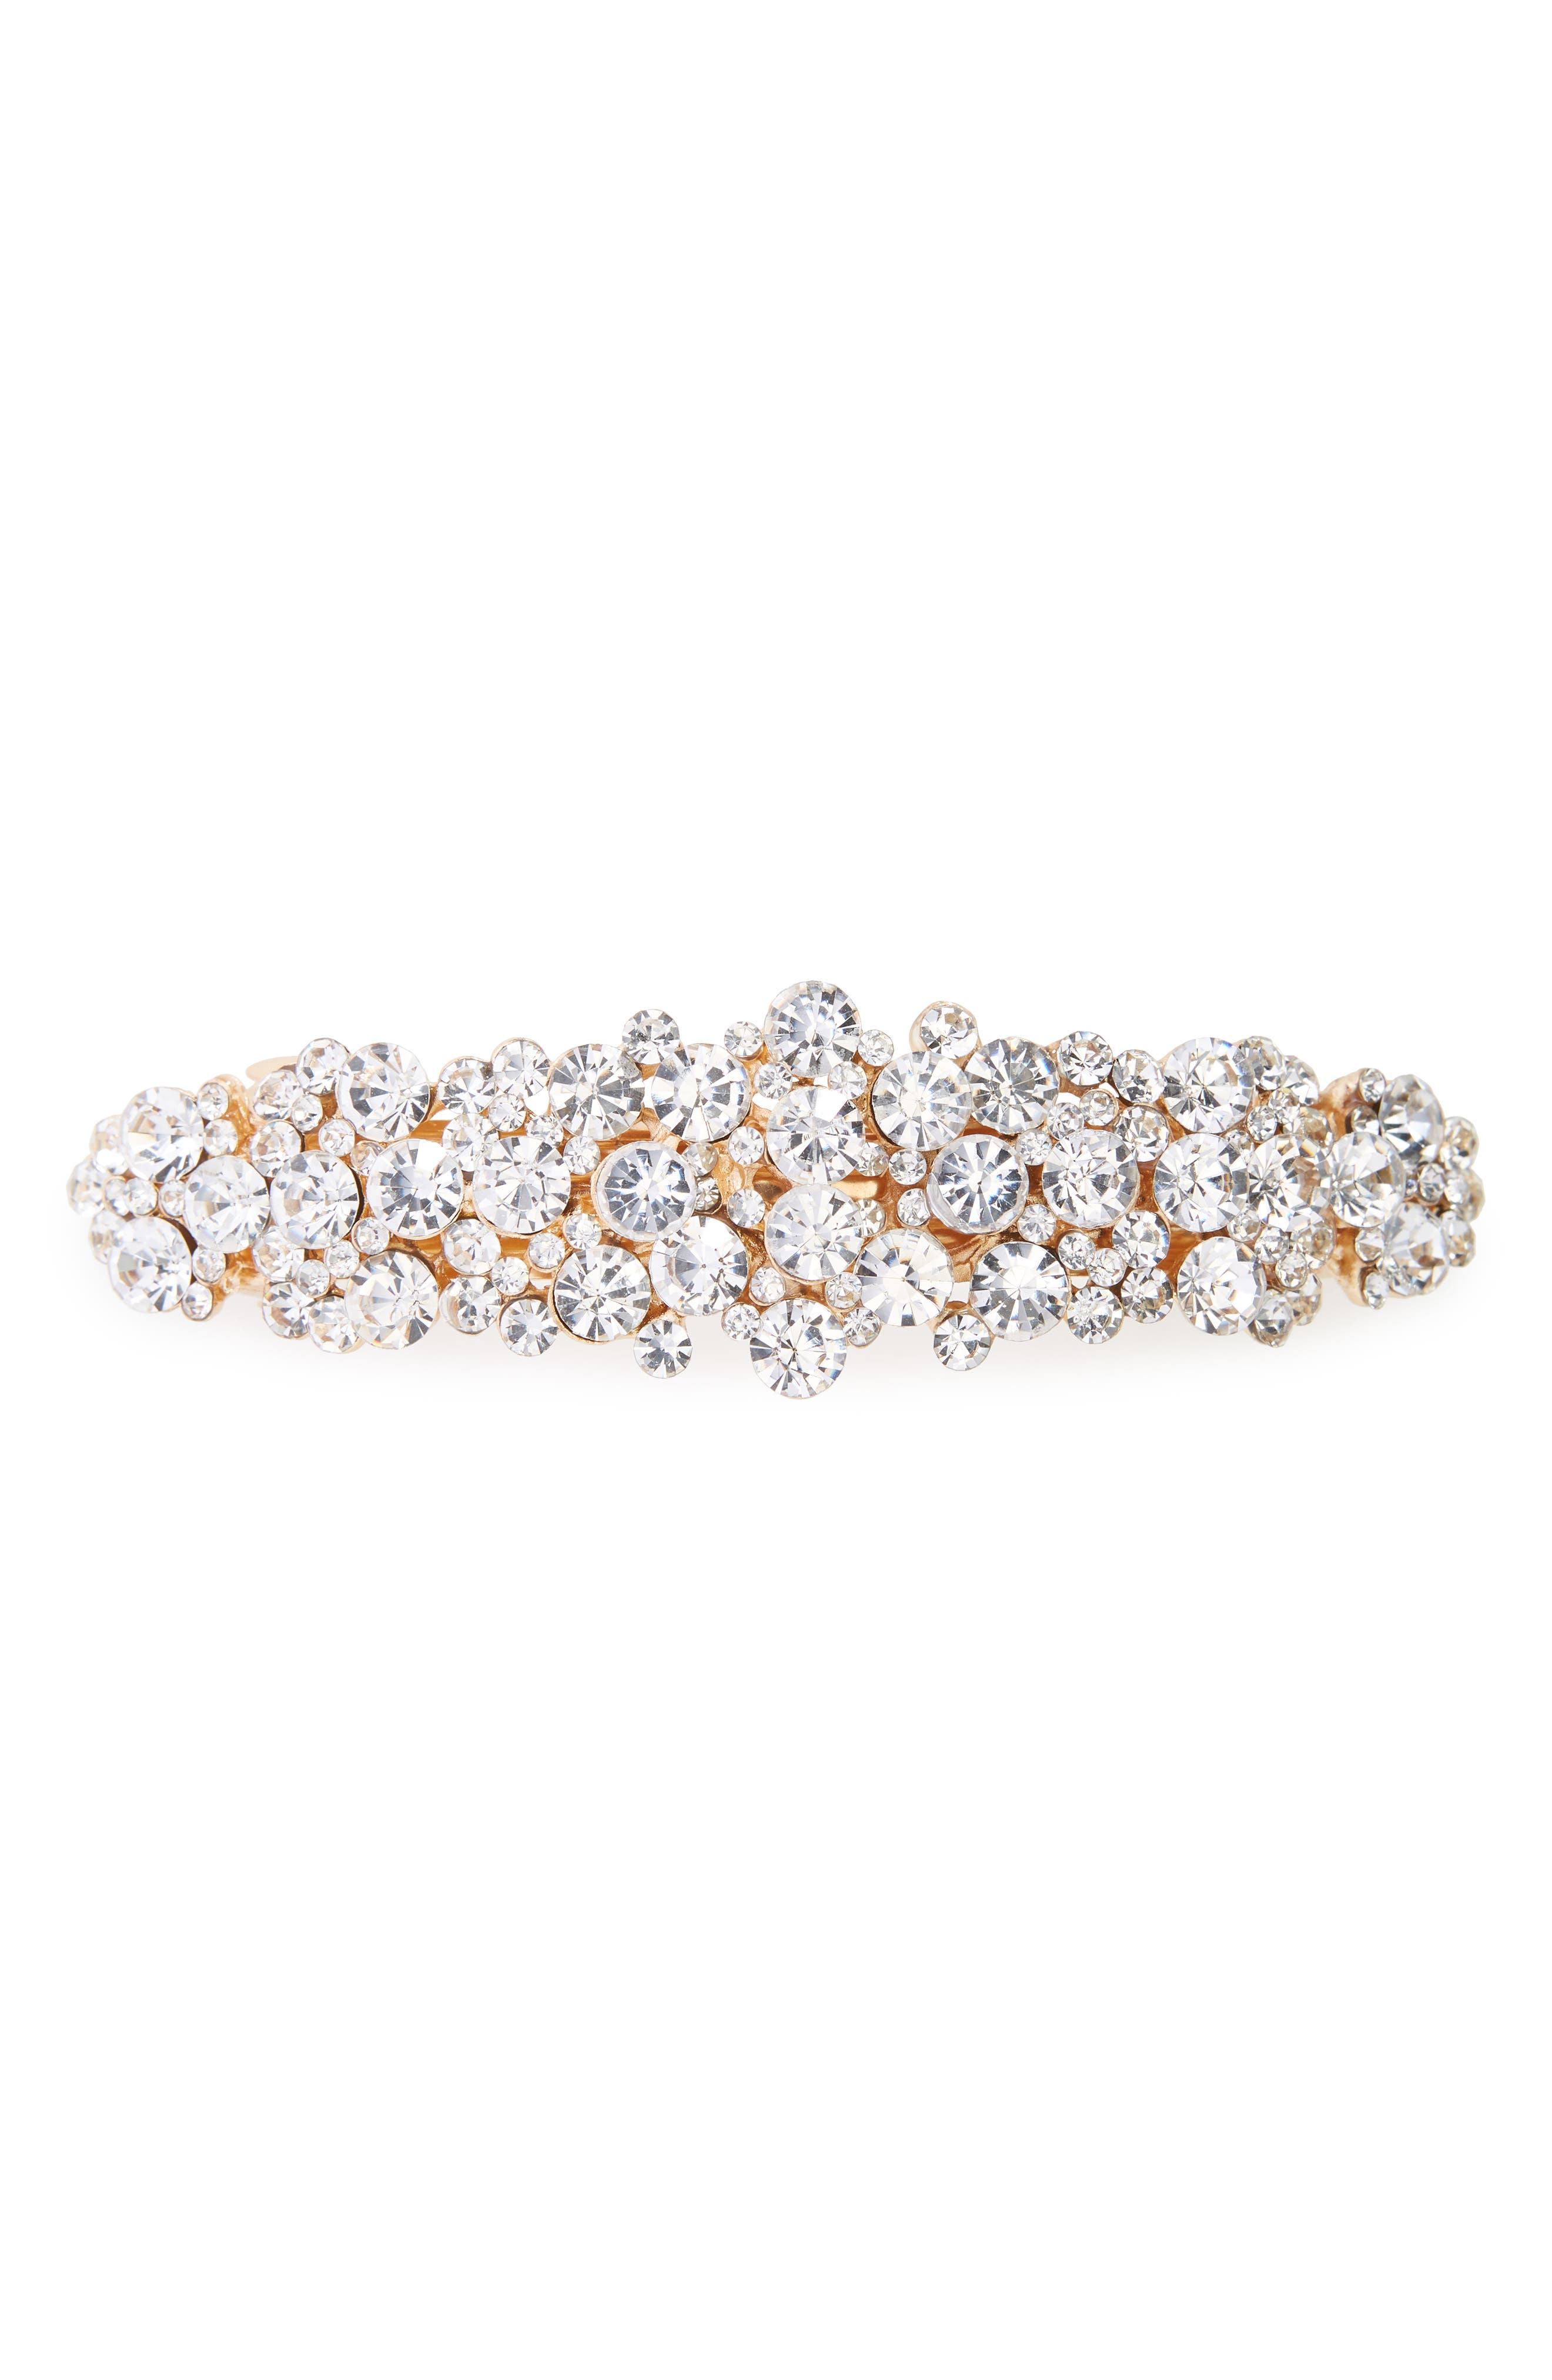 1920s Accessories | Great Gatsby Accessories Guide Tasha Crystal Barrette $16.80 AT vintagedancer.com